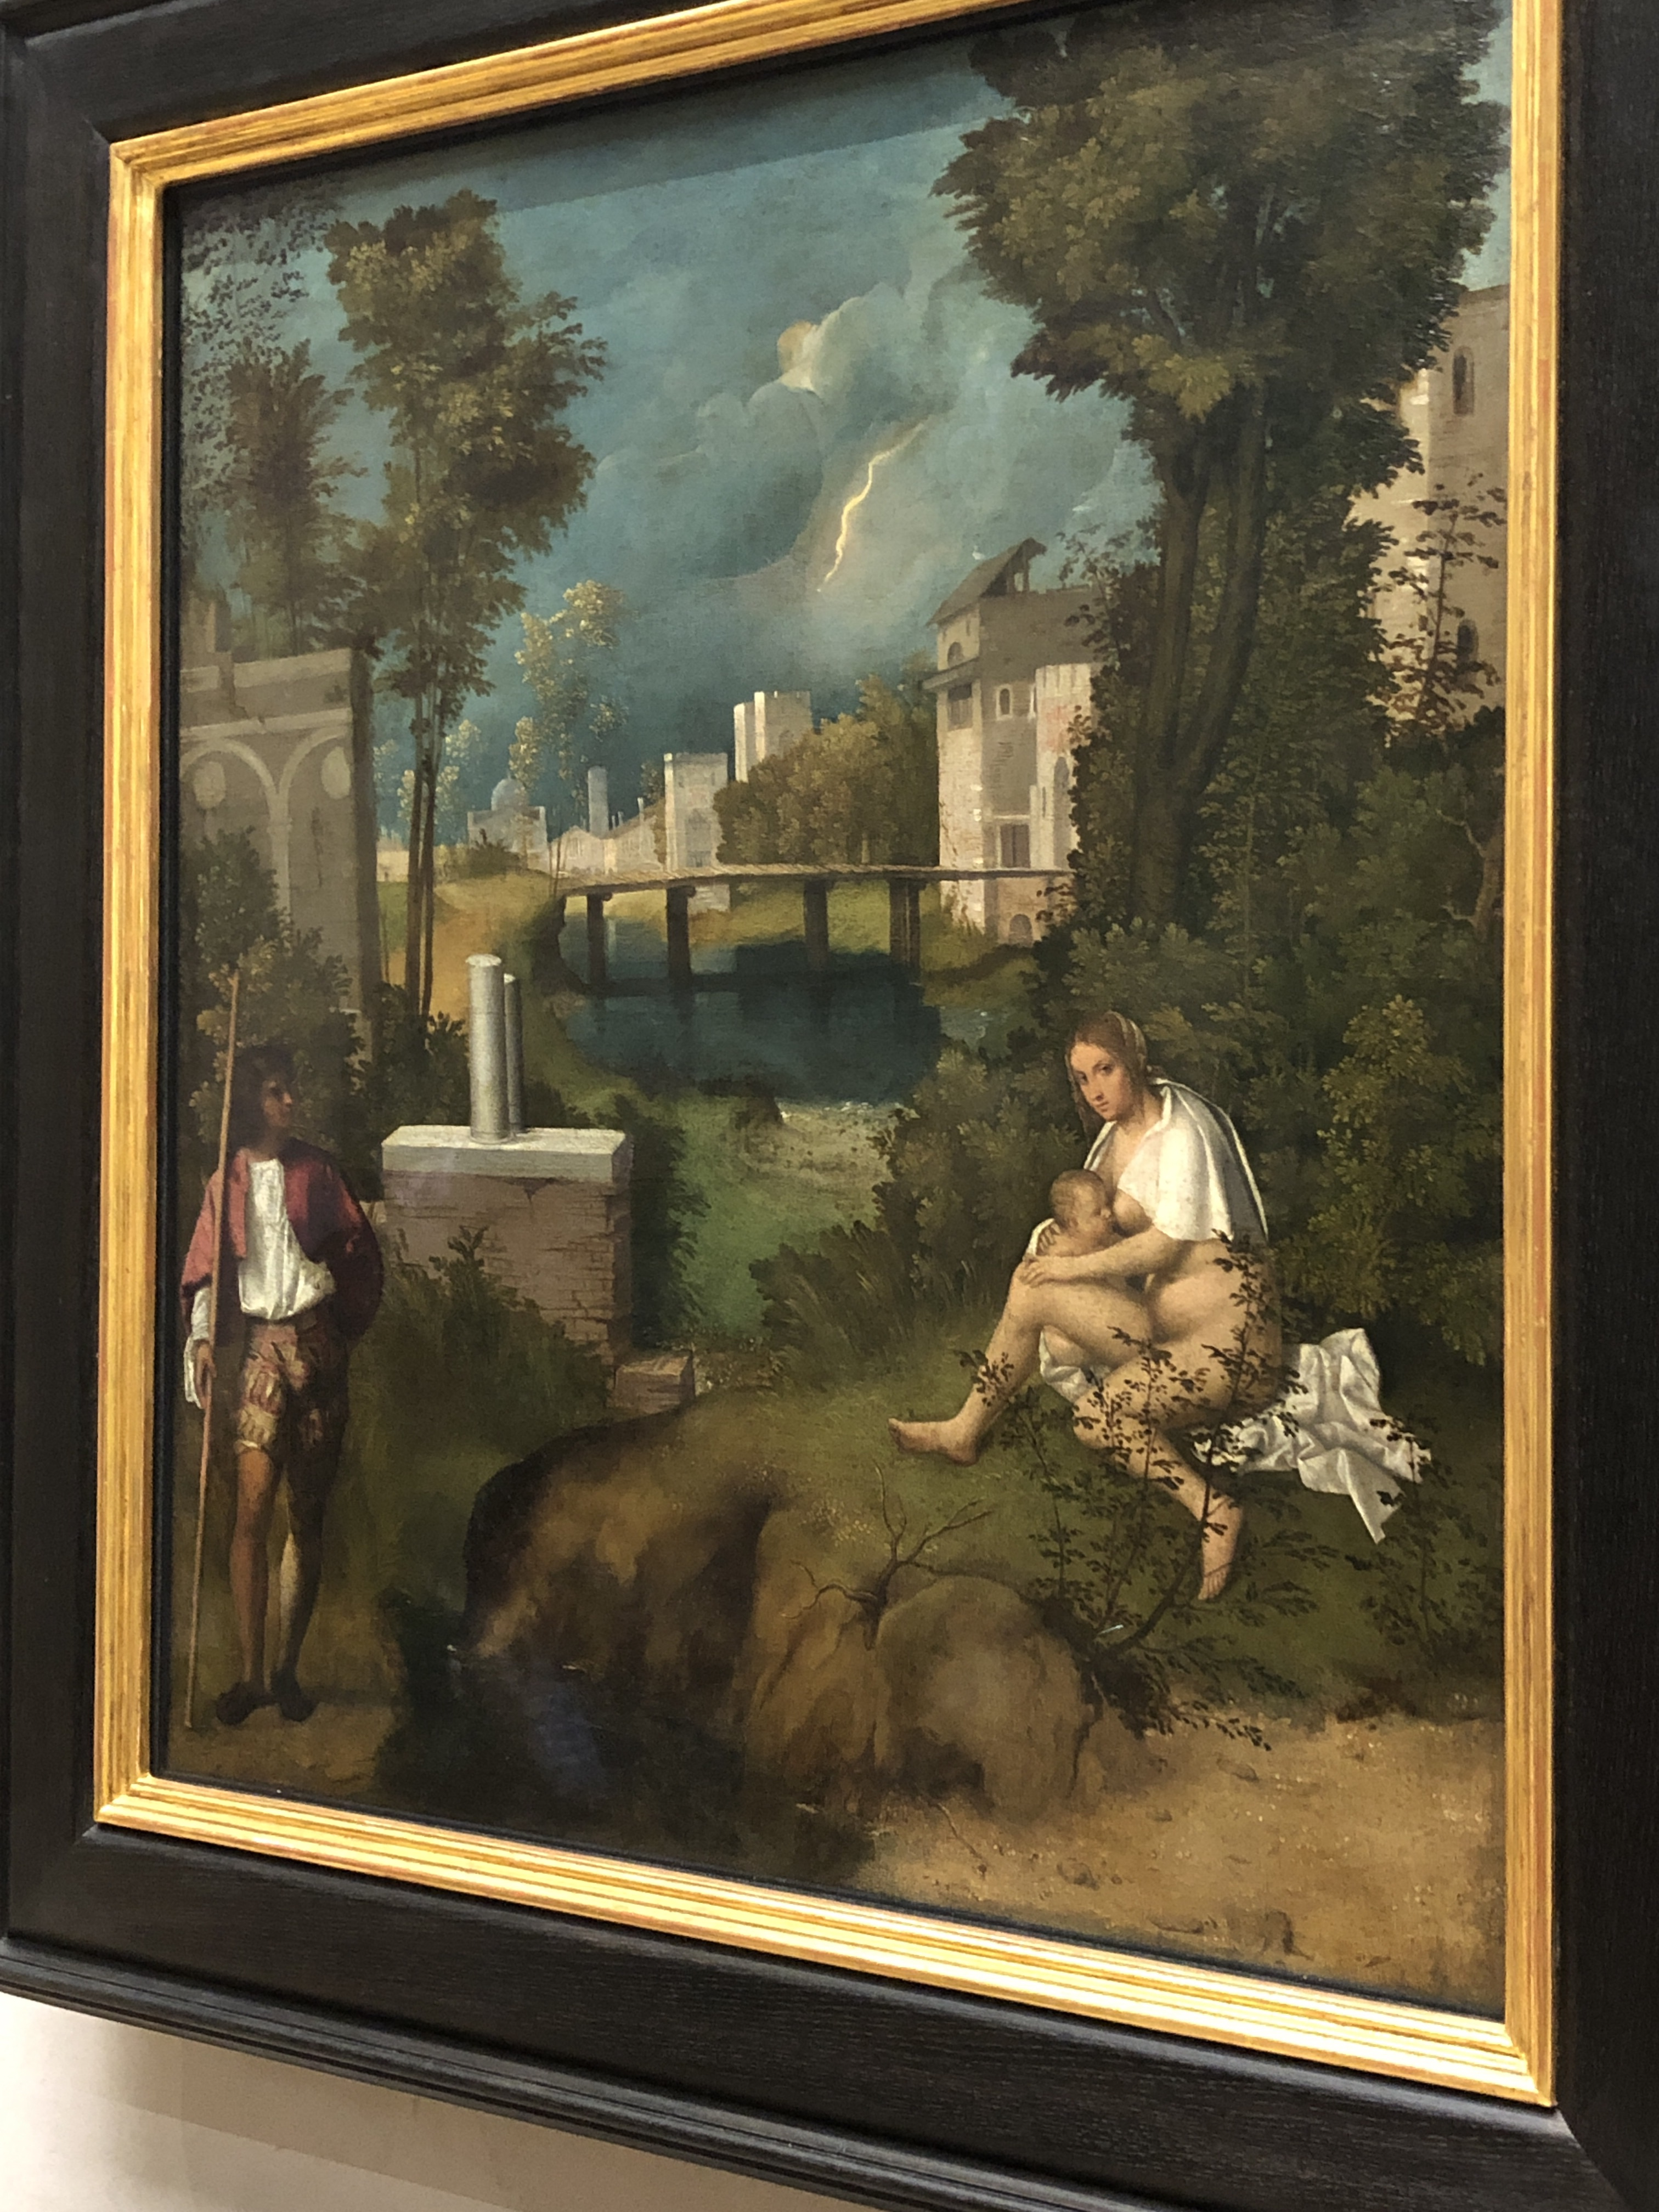 Giorgione's The Tempest' is a masterpiece of colour, mood & composition. c. 1506